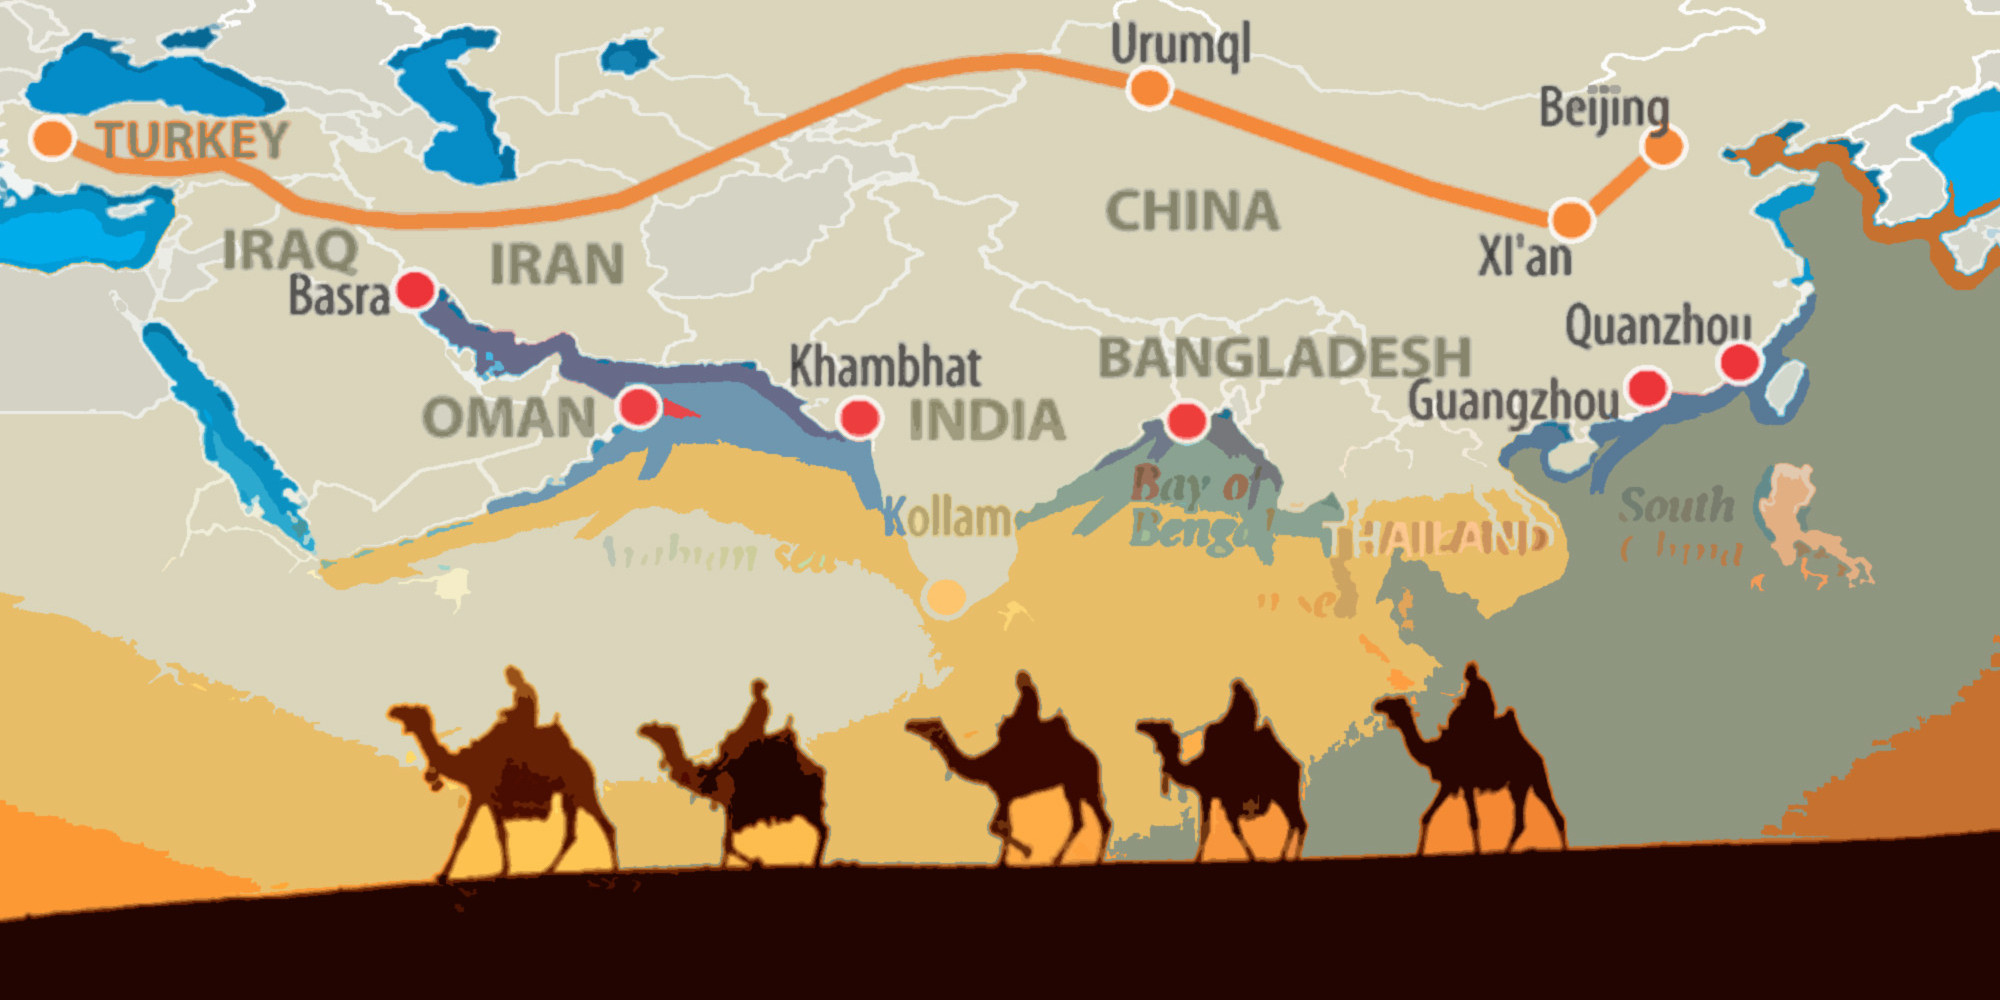 silk roads As we remain isolated in the bubble of our daily lives, and increasingly unengaged with the global society, a new world order is taking shape right under our noses.